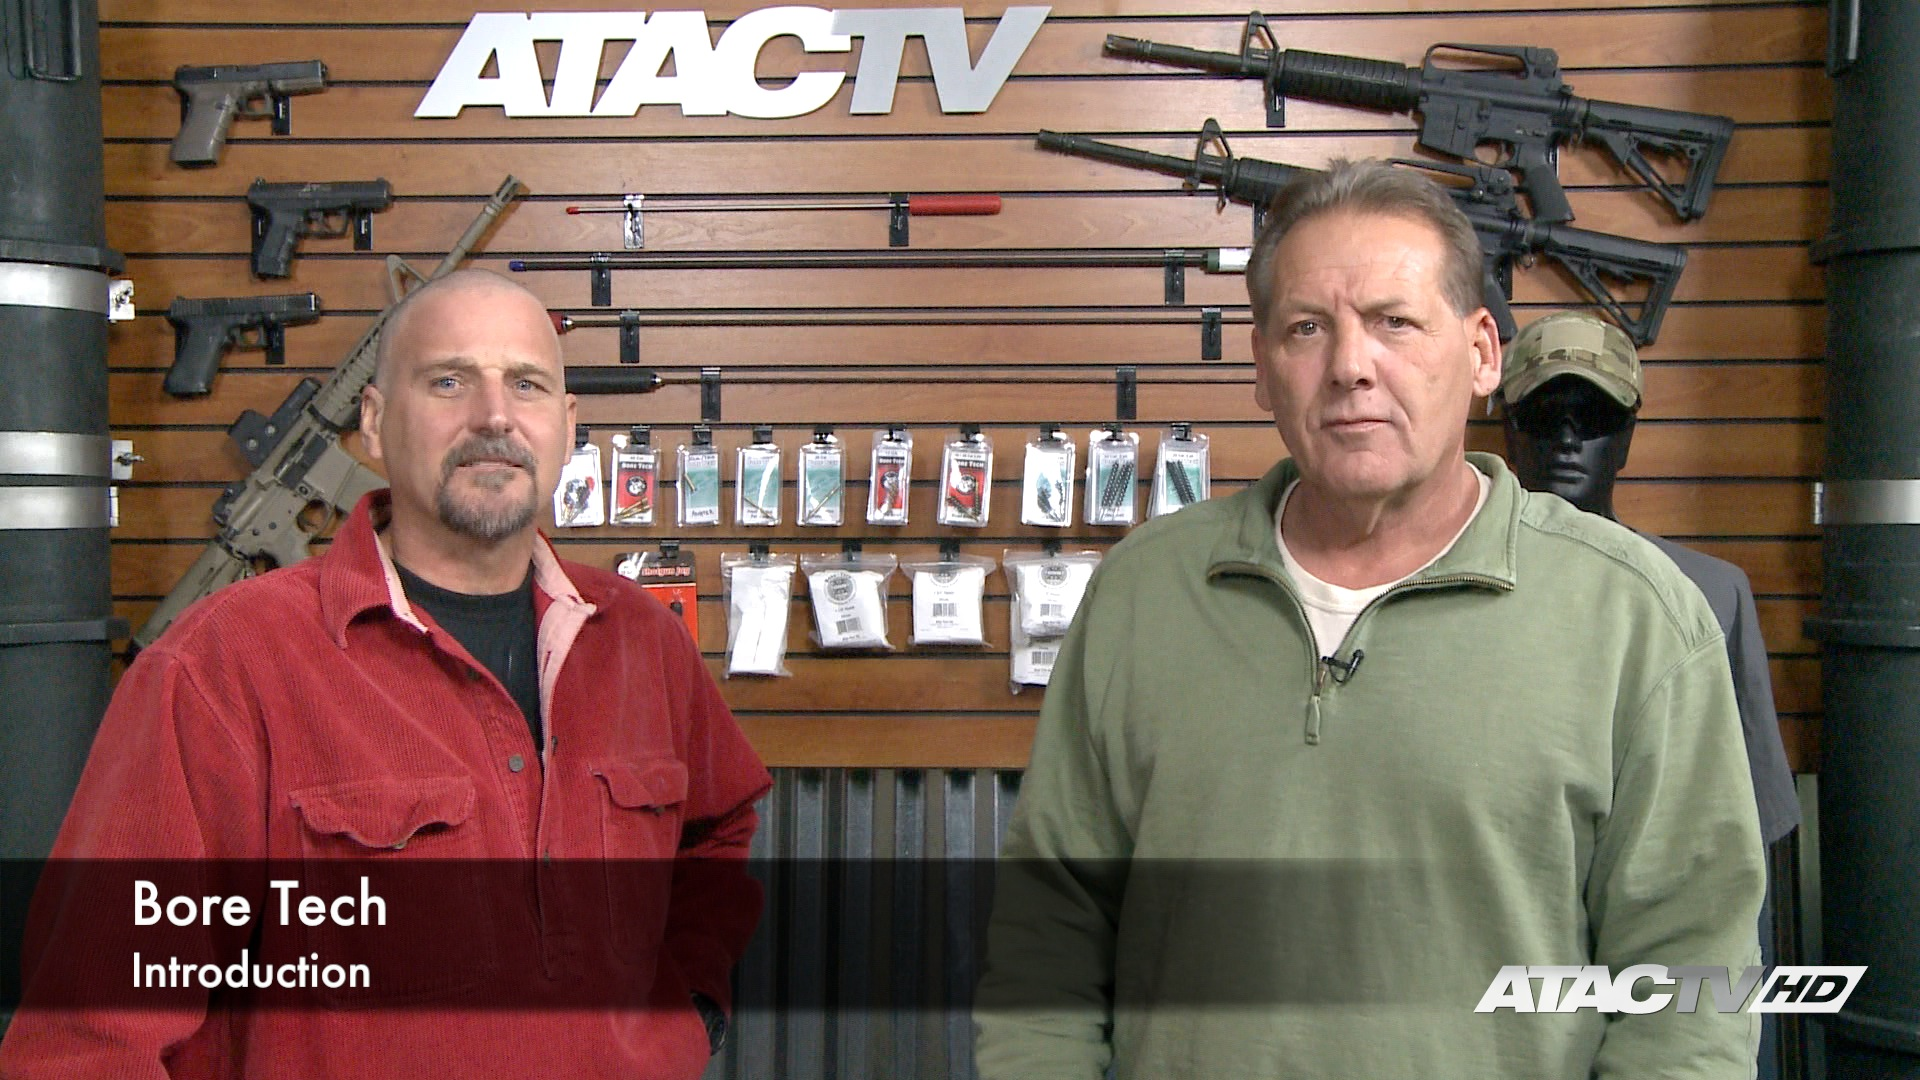 Bore Tech products on ATAC TV Firearms